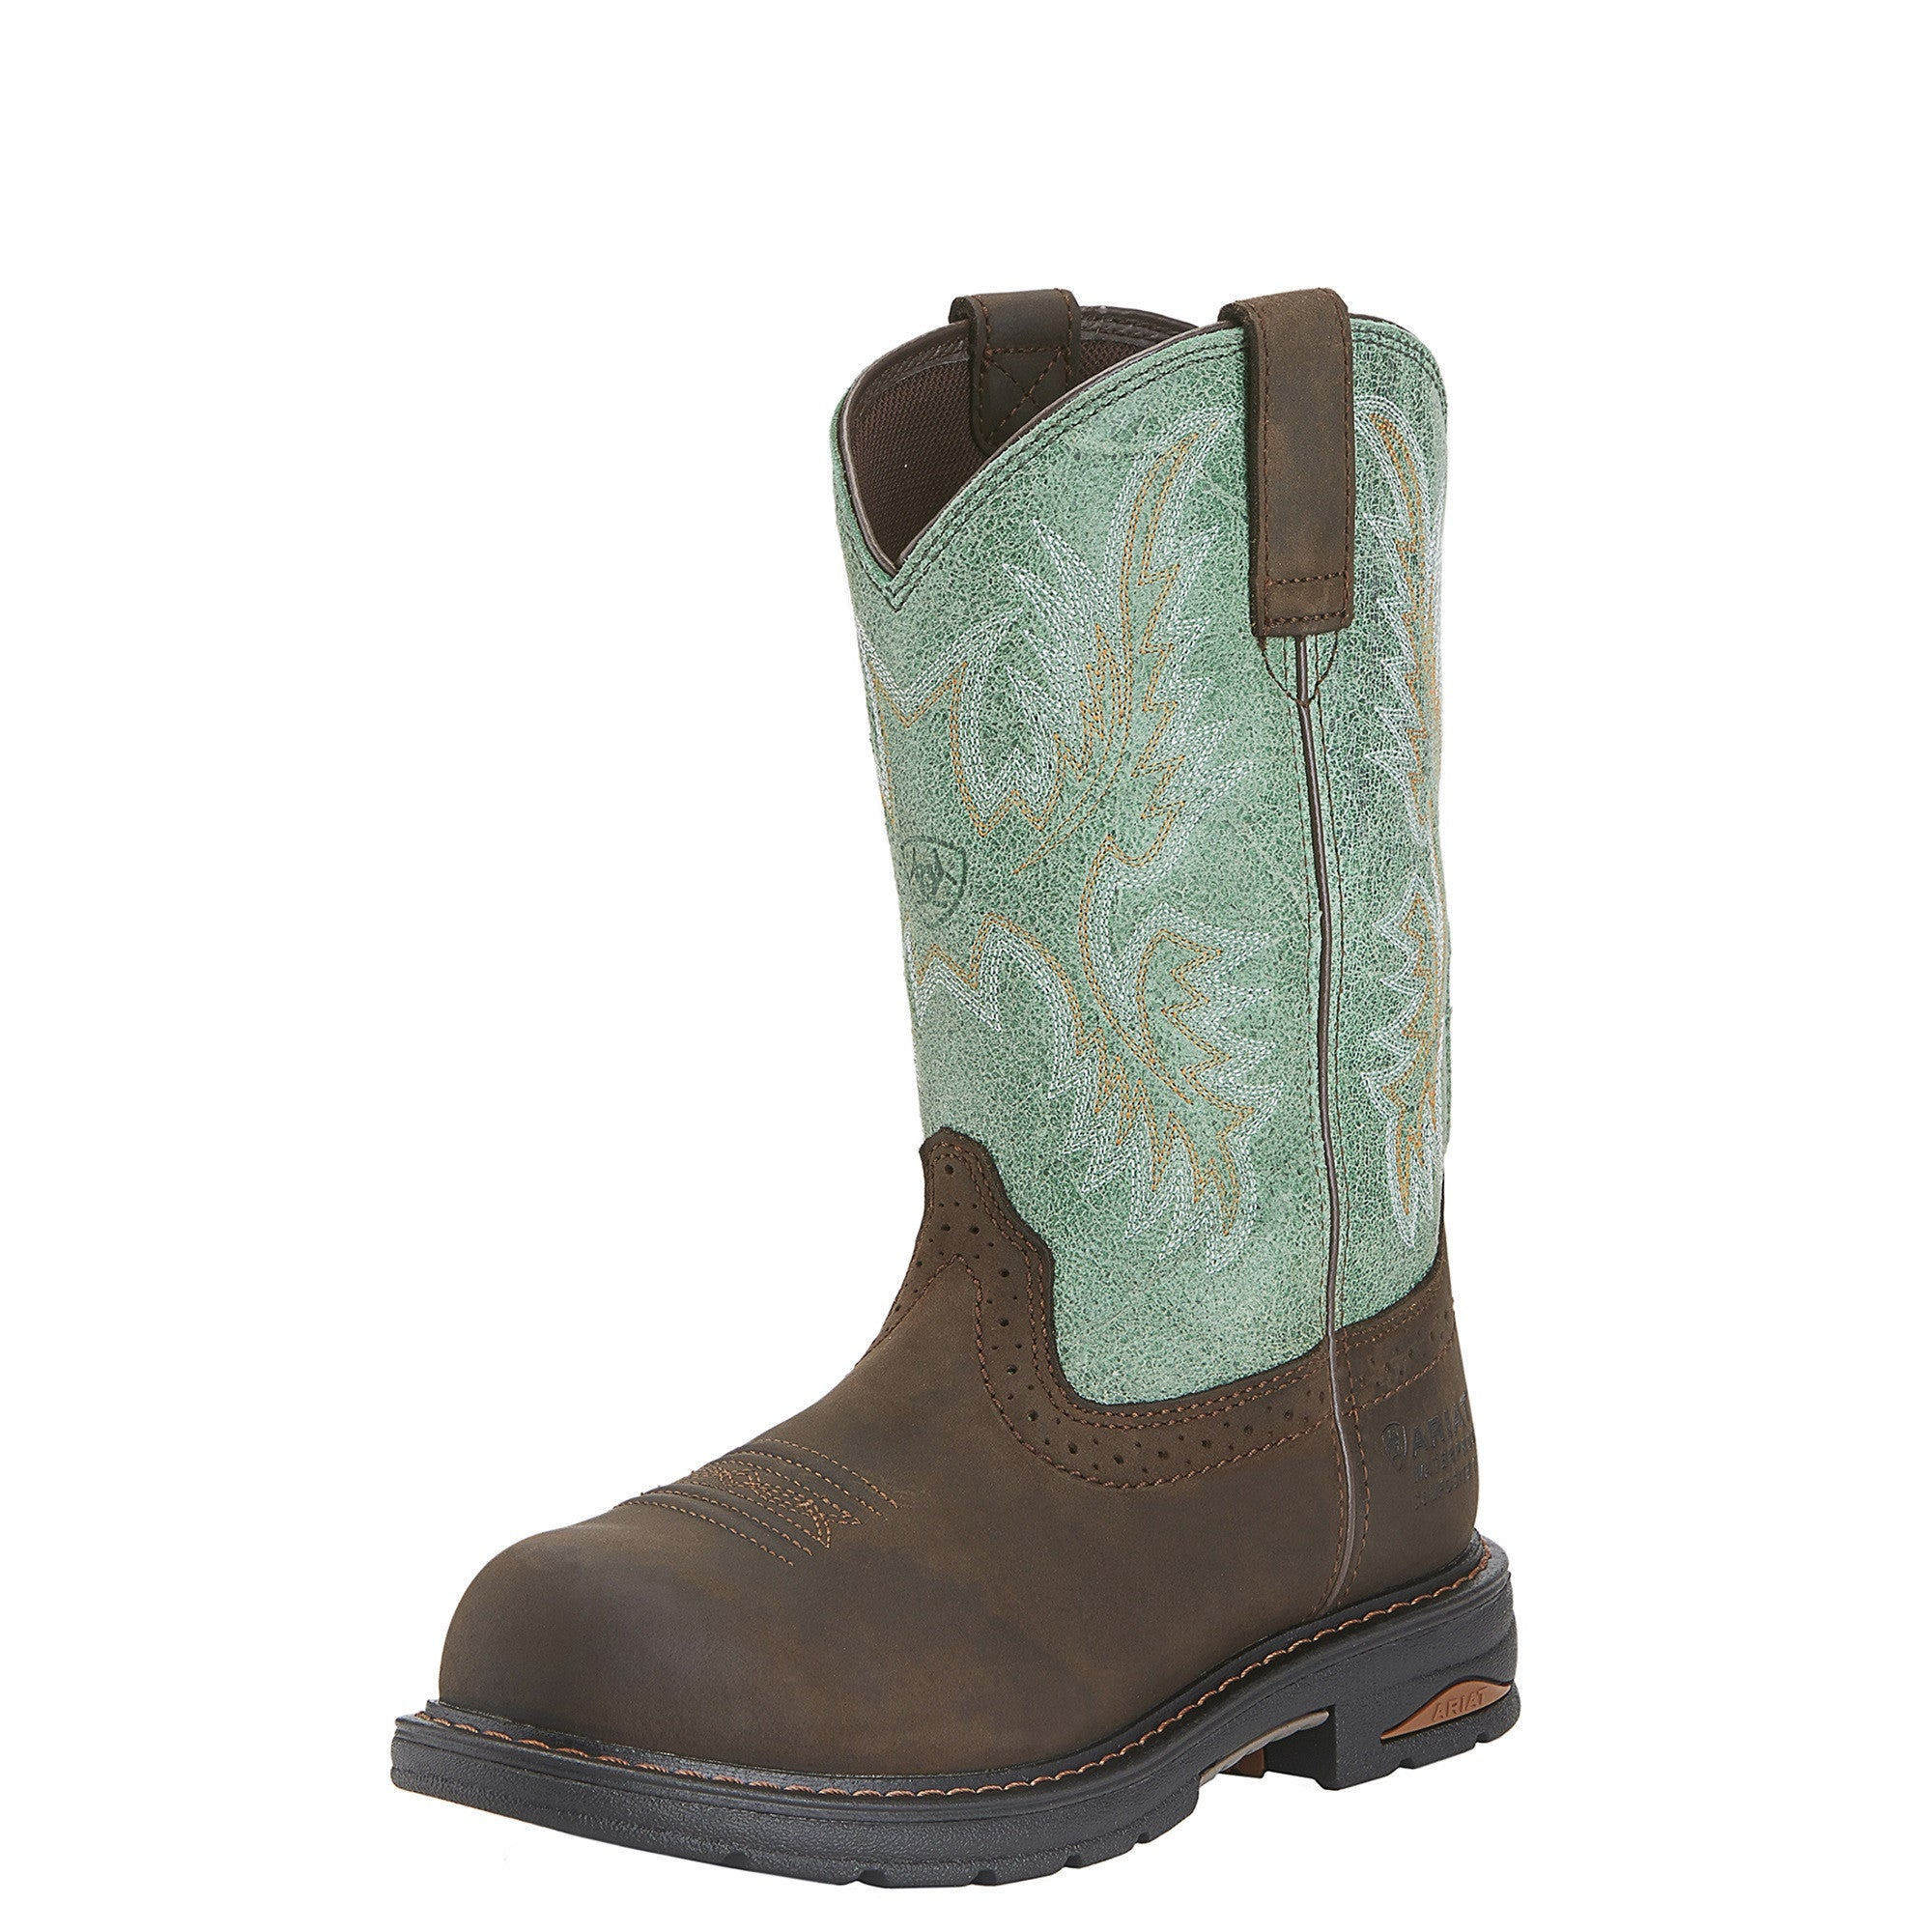 Women's Ariat Tracy H20 Composite Toe Work Boot #10015405